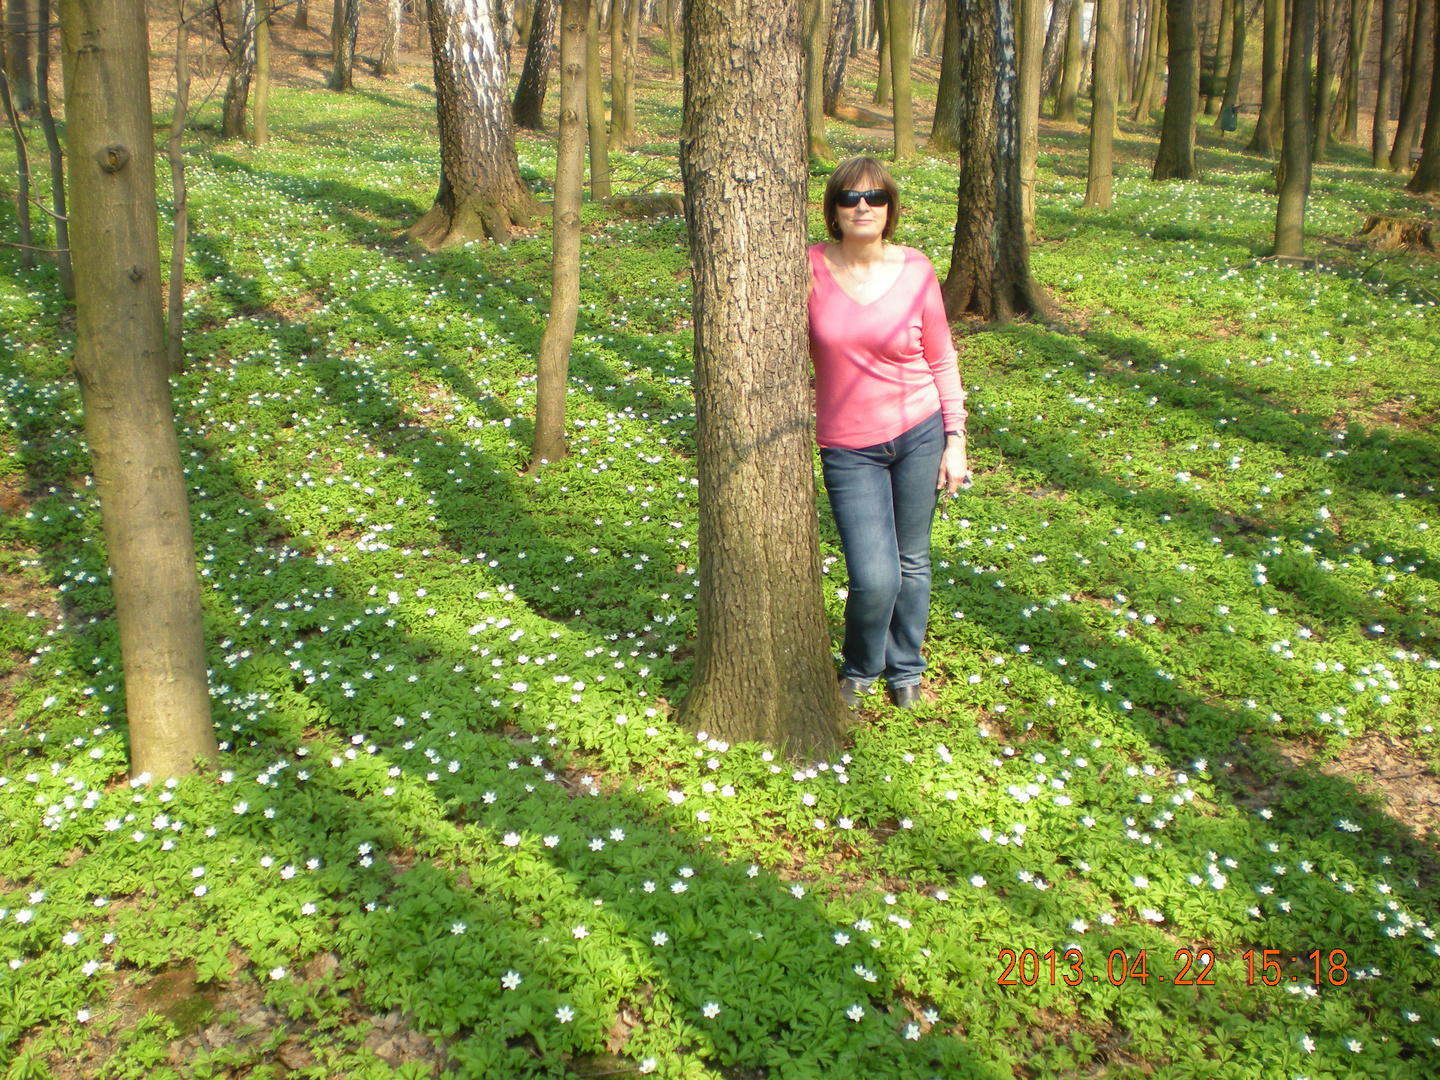 In Wald